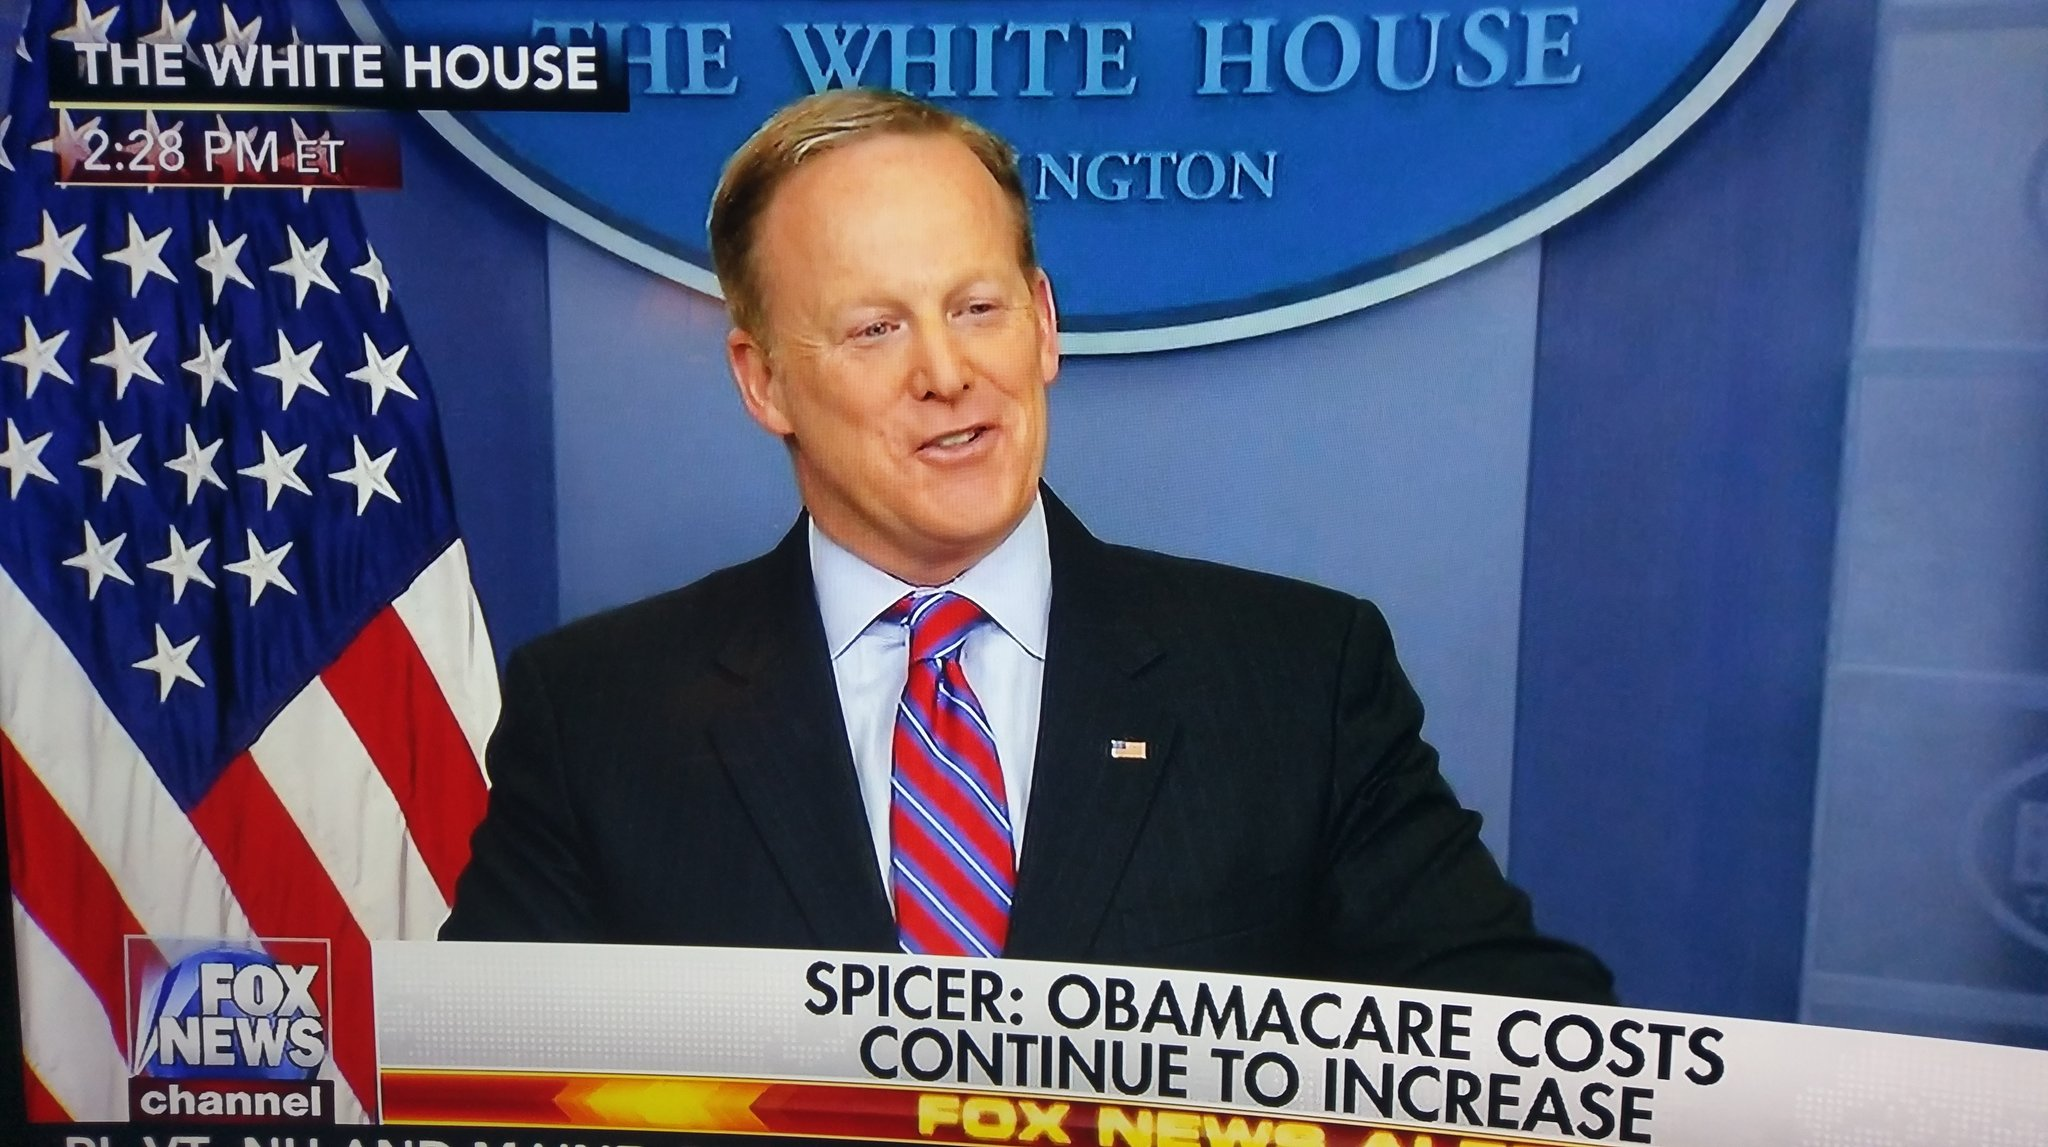 Watch @PressSec 🗯🥊Destroy 💥 #FakeCBOrpt ❎ #ObamaCare ❎ Start YouTube 📽 at 1:00 HR Time https://t.co/kLDApg2zOq  @realDonaldTrump  #MAGA 🇺🇸🦅 https://t.co/s5B96kvD7M